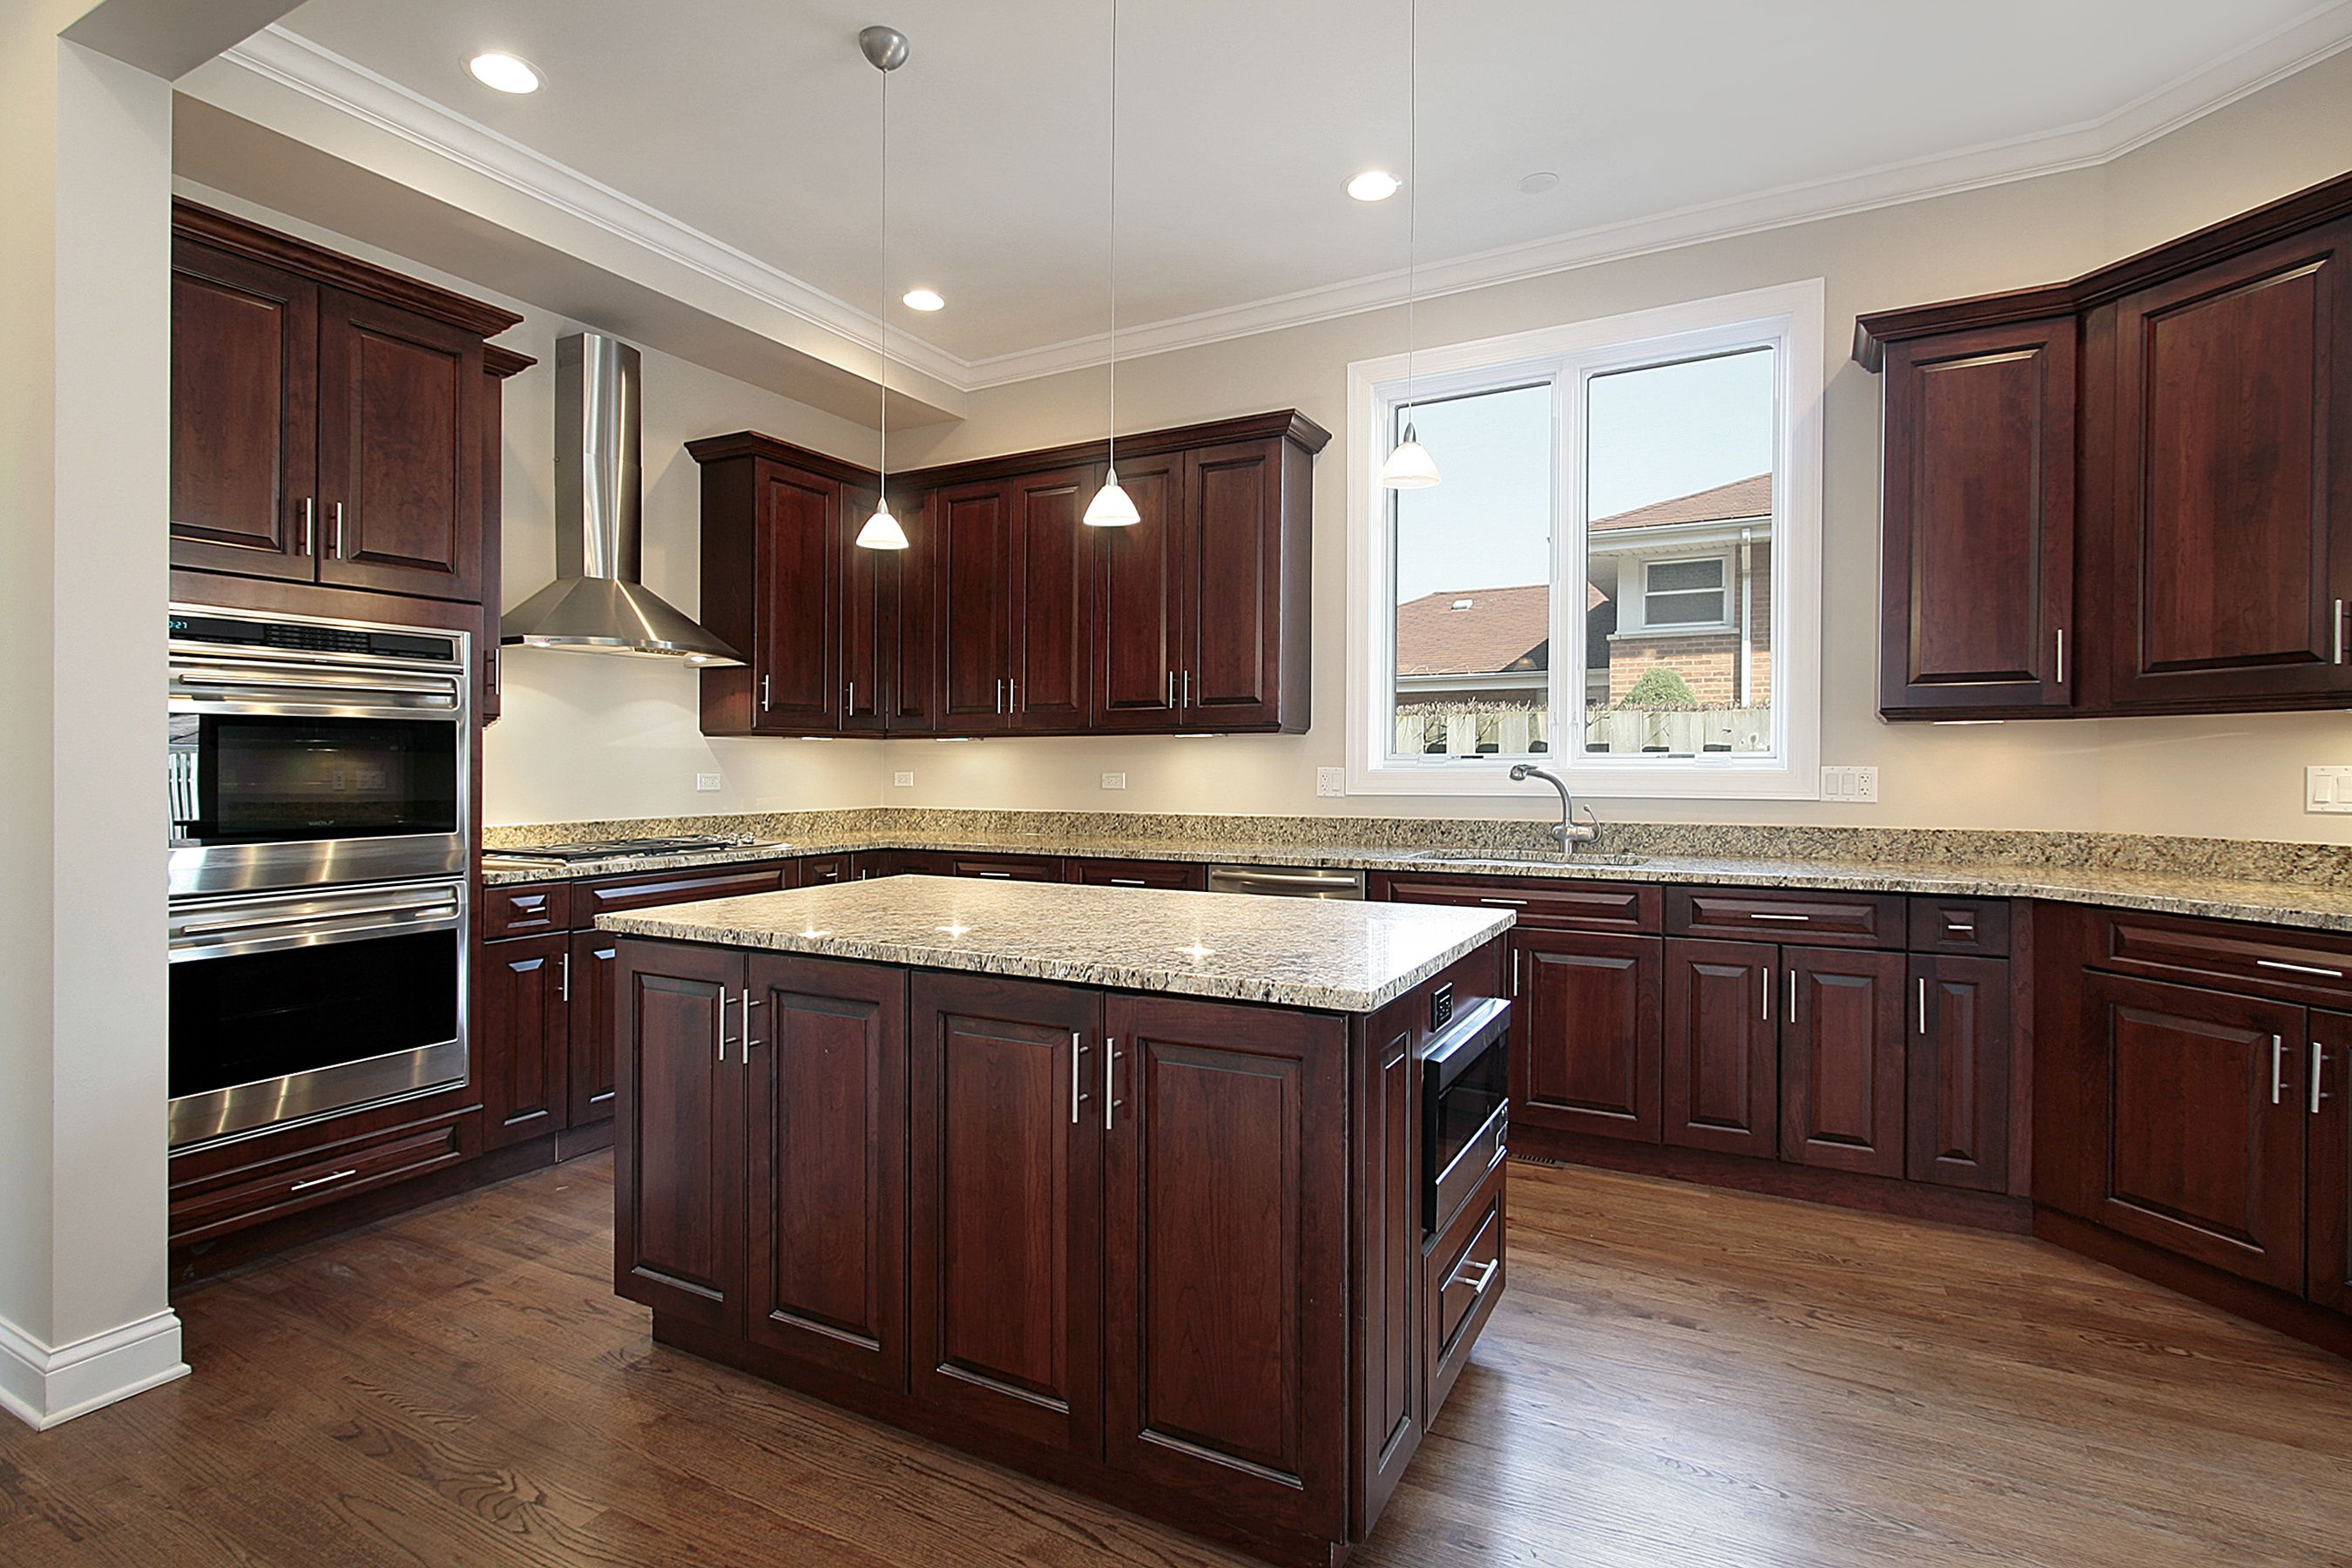 Ny Home Kitchen With Espresso Cabinets Island With Built In Micro And Doubl Cherry Wood Kitchen Cabinets Cherry Cabinets Kitchen Kitchen Cabinets And Flooring Kitchen floor ideas with cherry cabinets